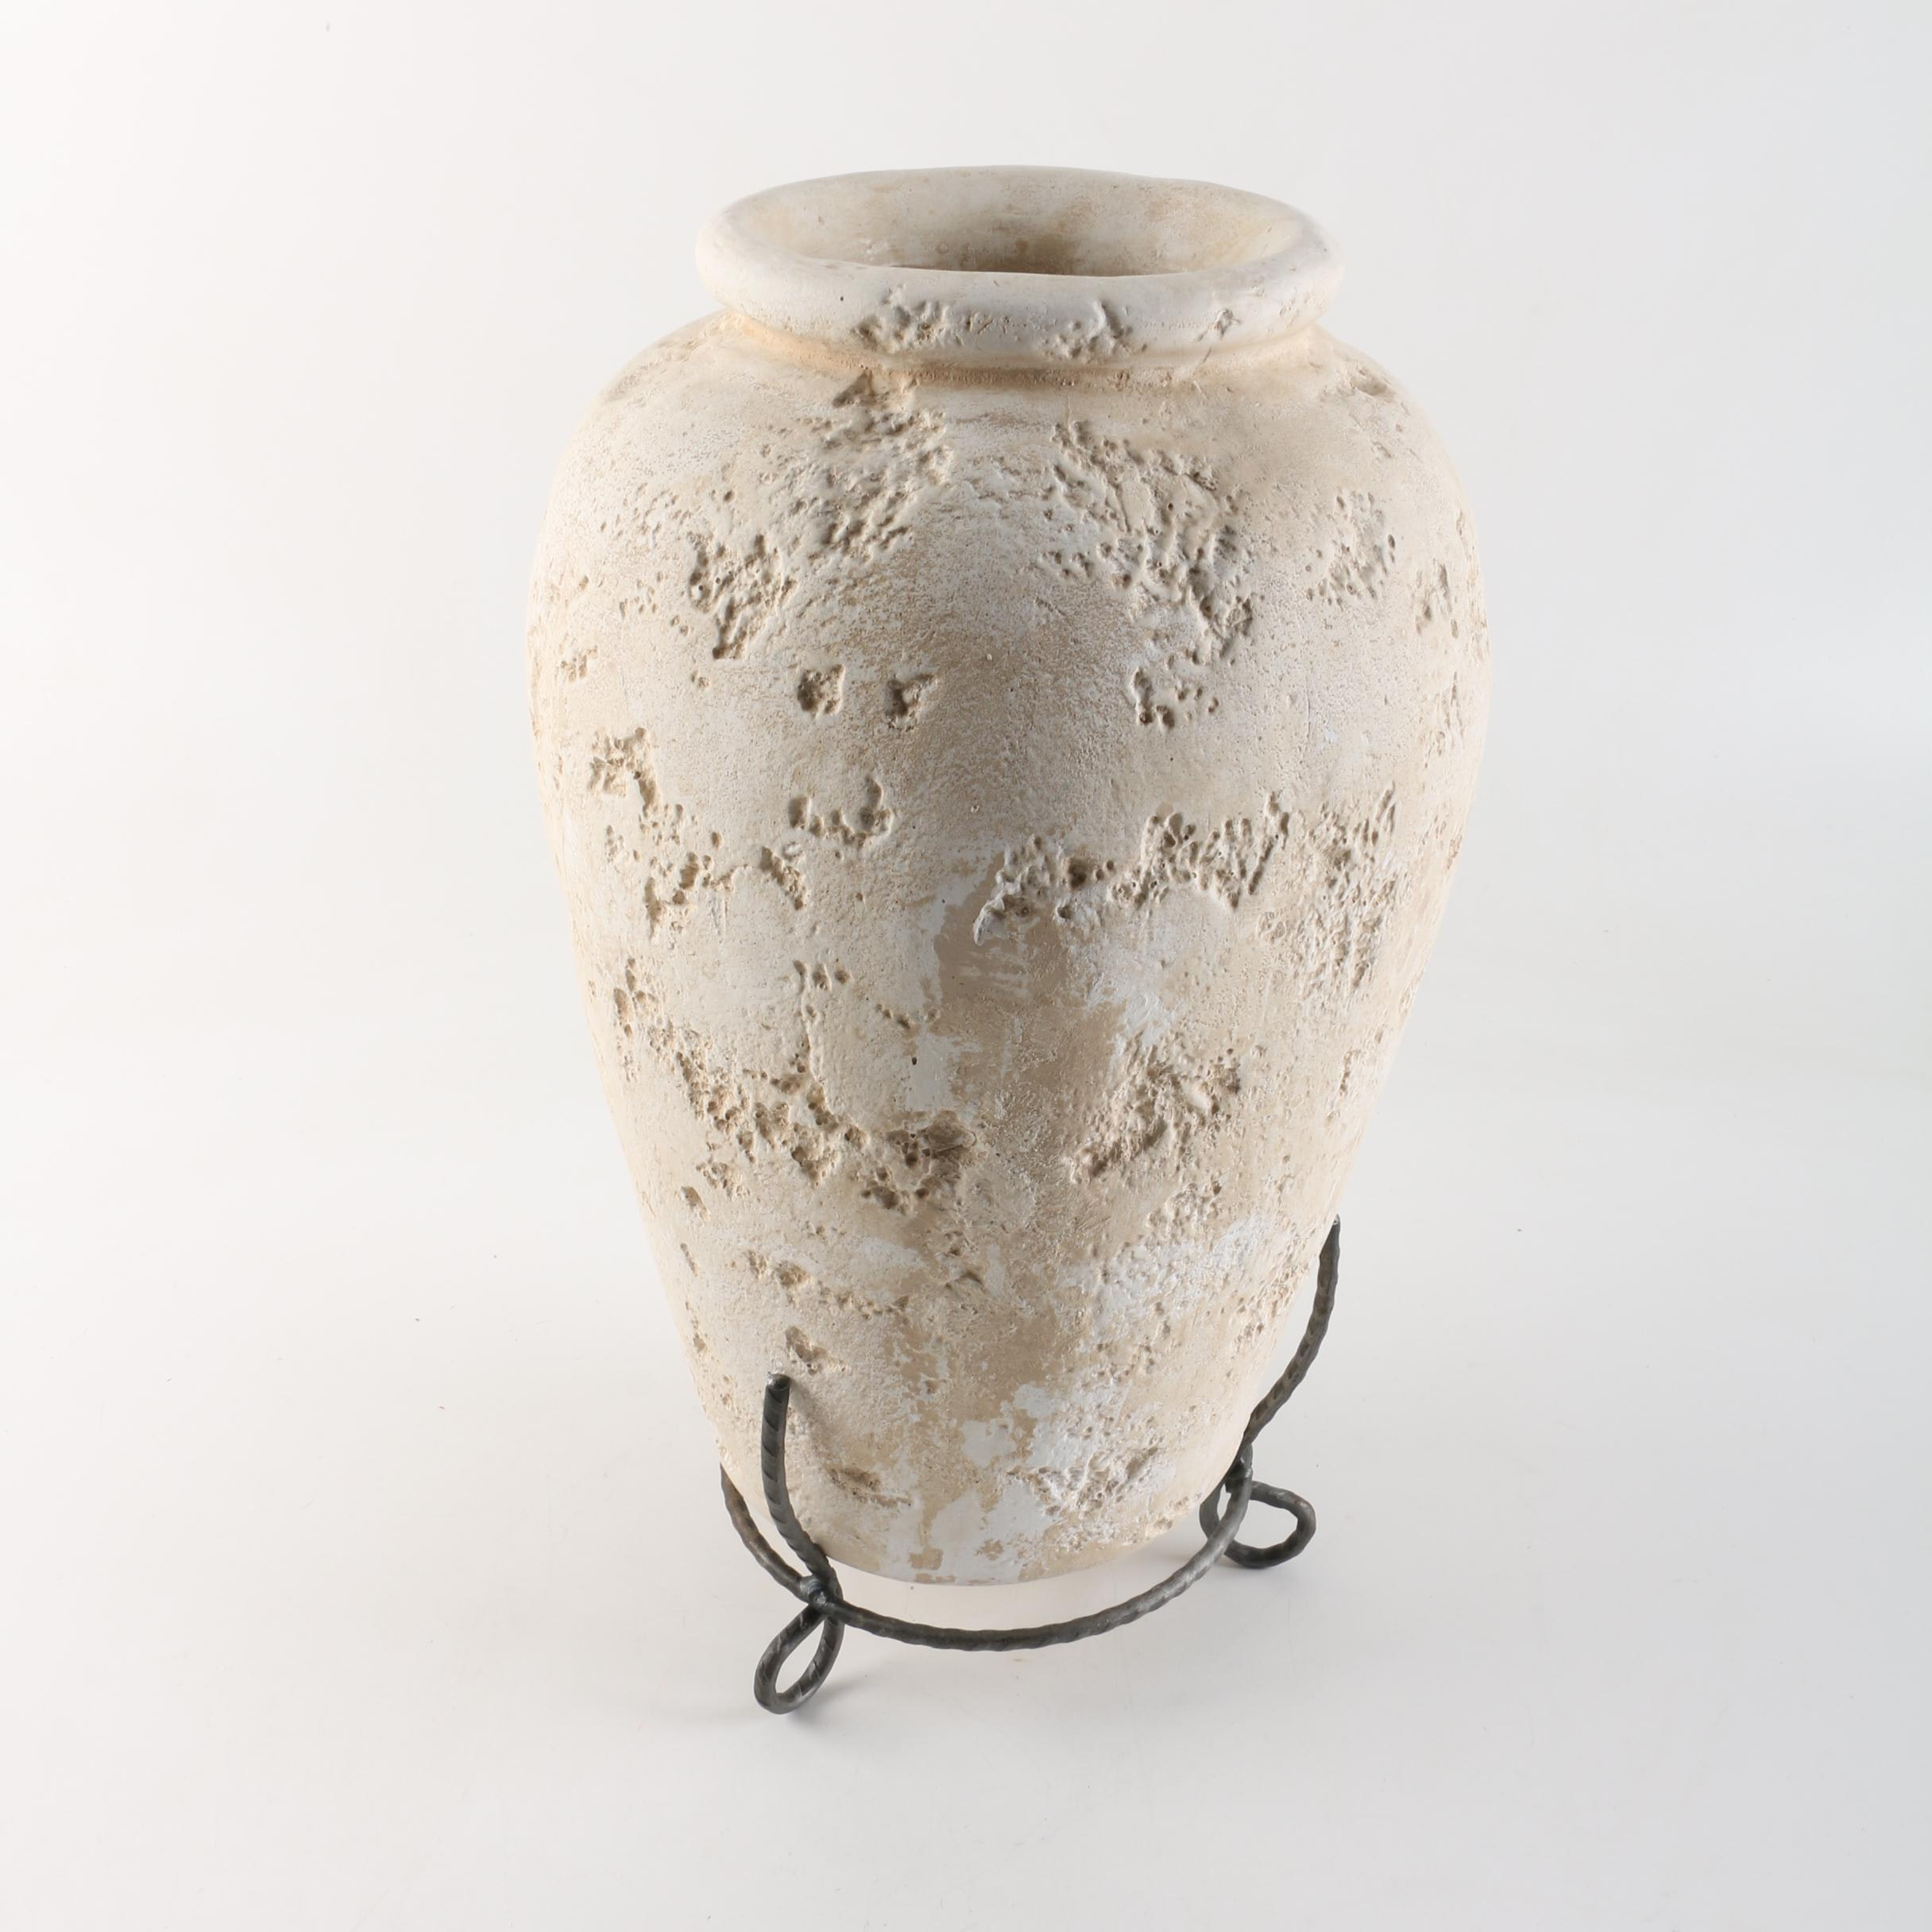 Ceramic Vase with Metal Stand